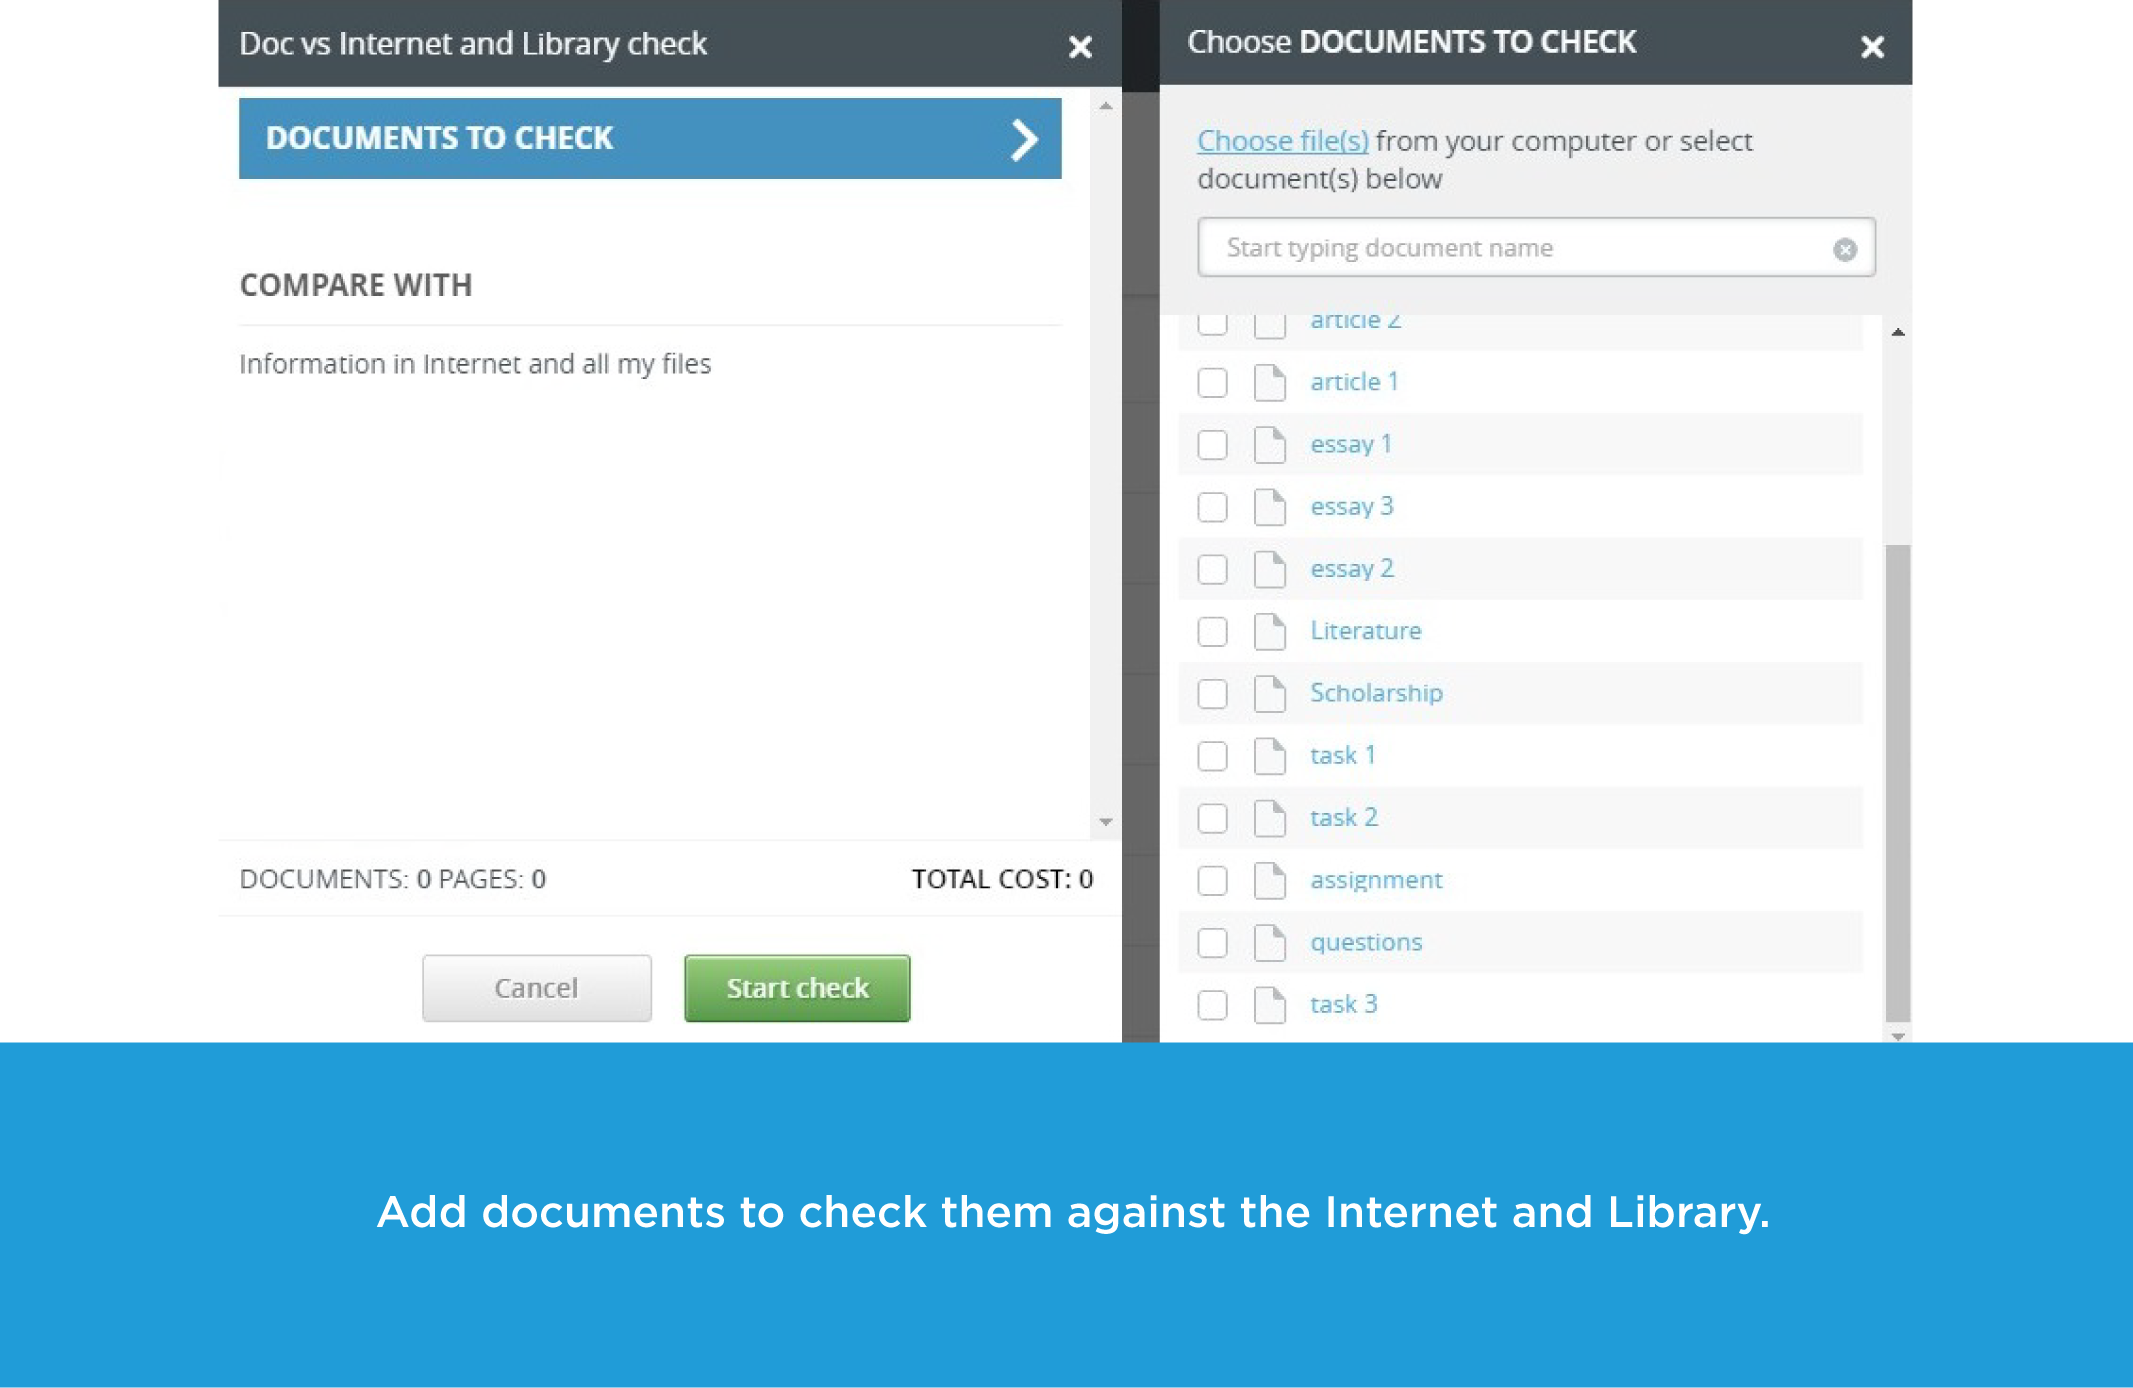 Screenshot_ Add documents to check them against the Internet and Library